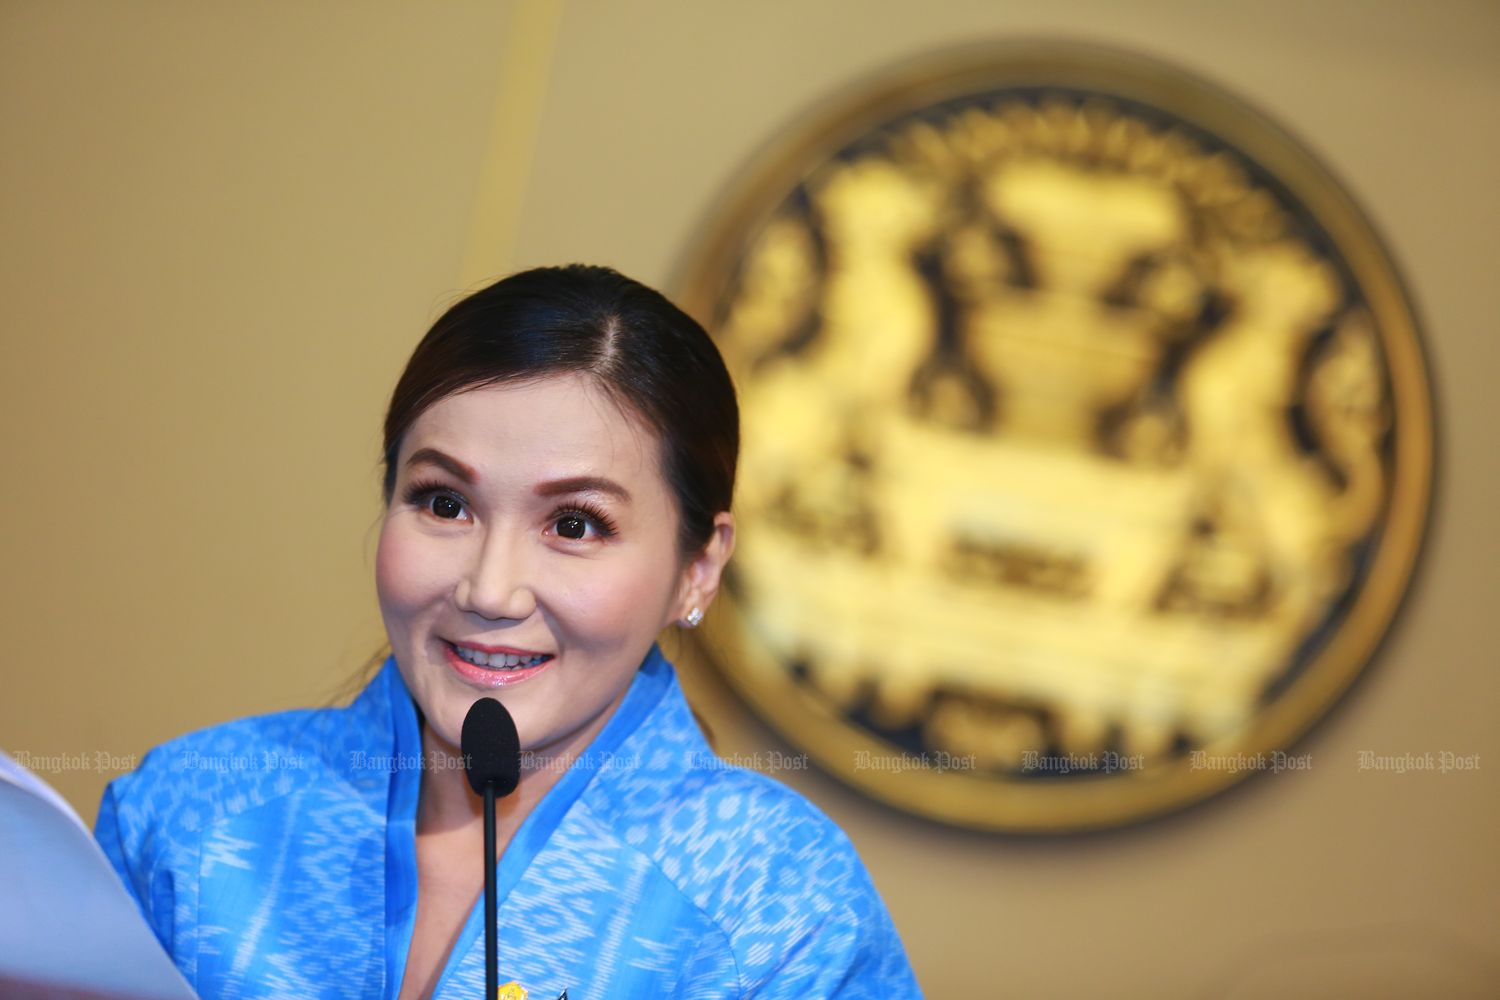 The budget deficit should not be a concern because it will largely be earmarked for income-generating investment, says government spokeswoman Narumon Pinyosinwat on Tuesday. (Photo by Somchai Poomlard)